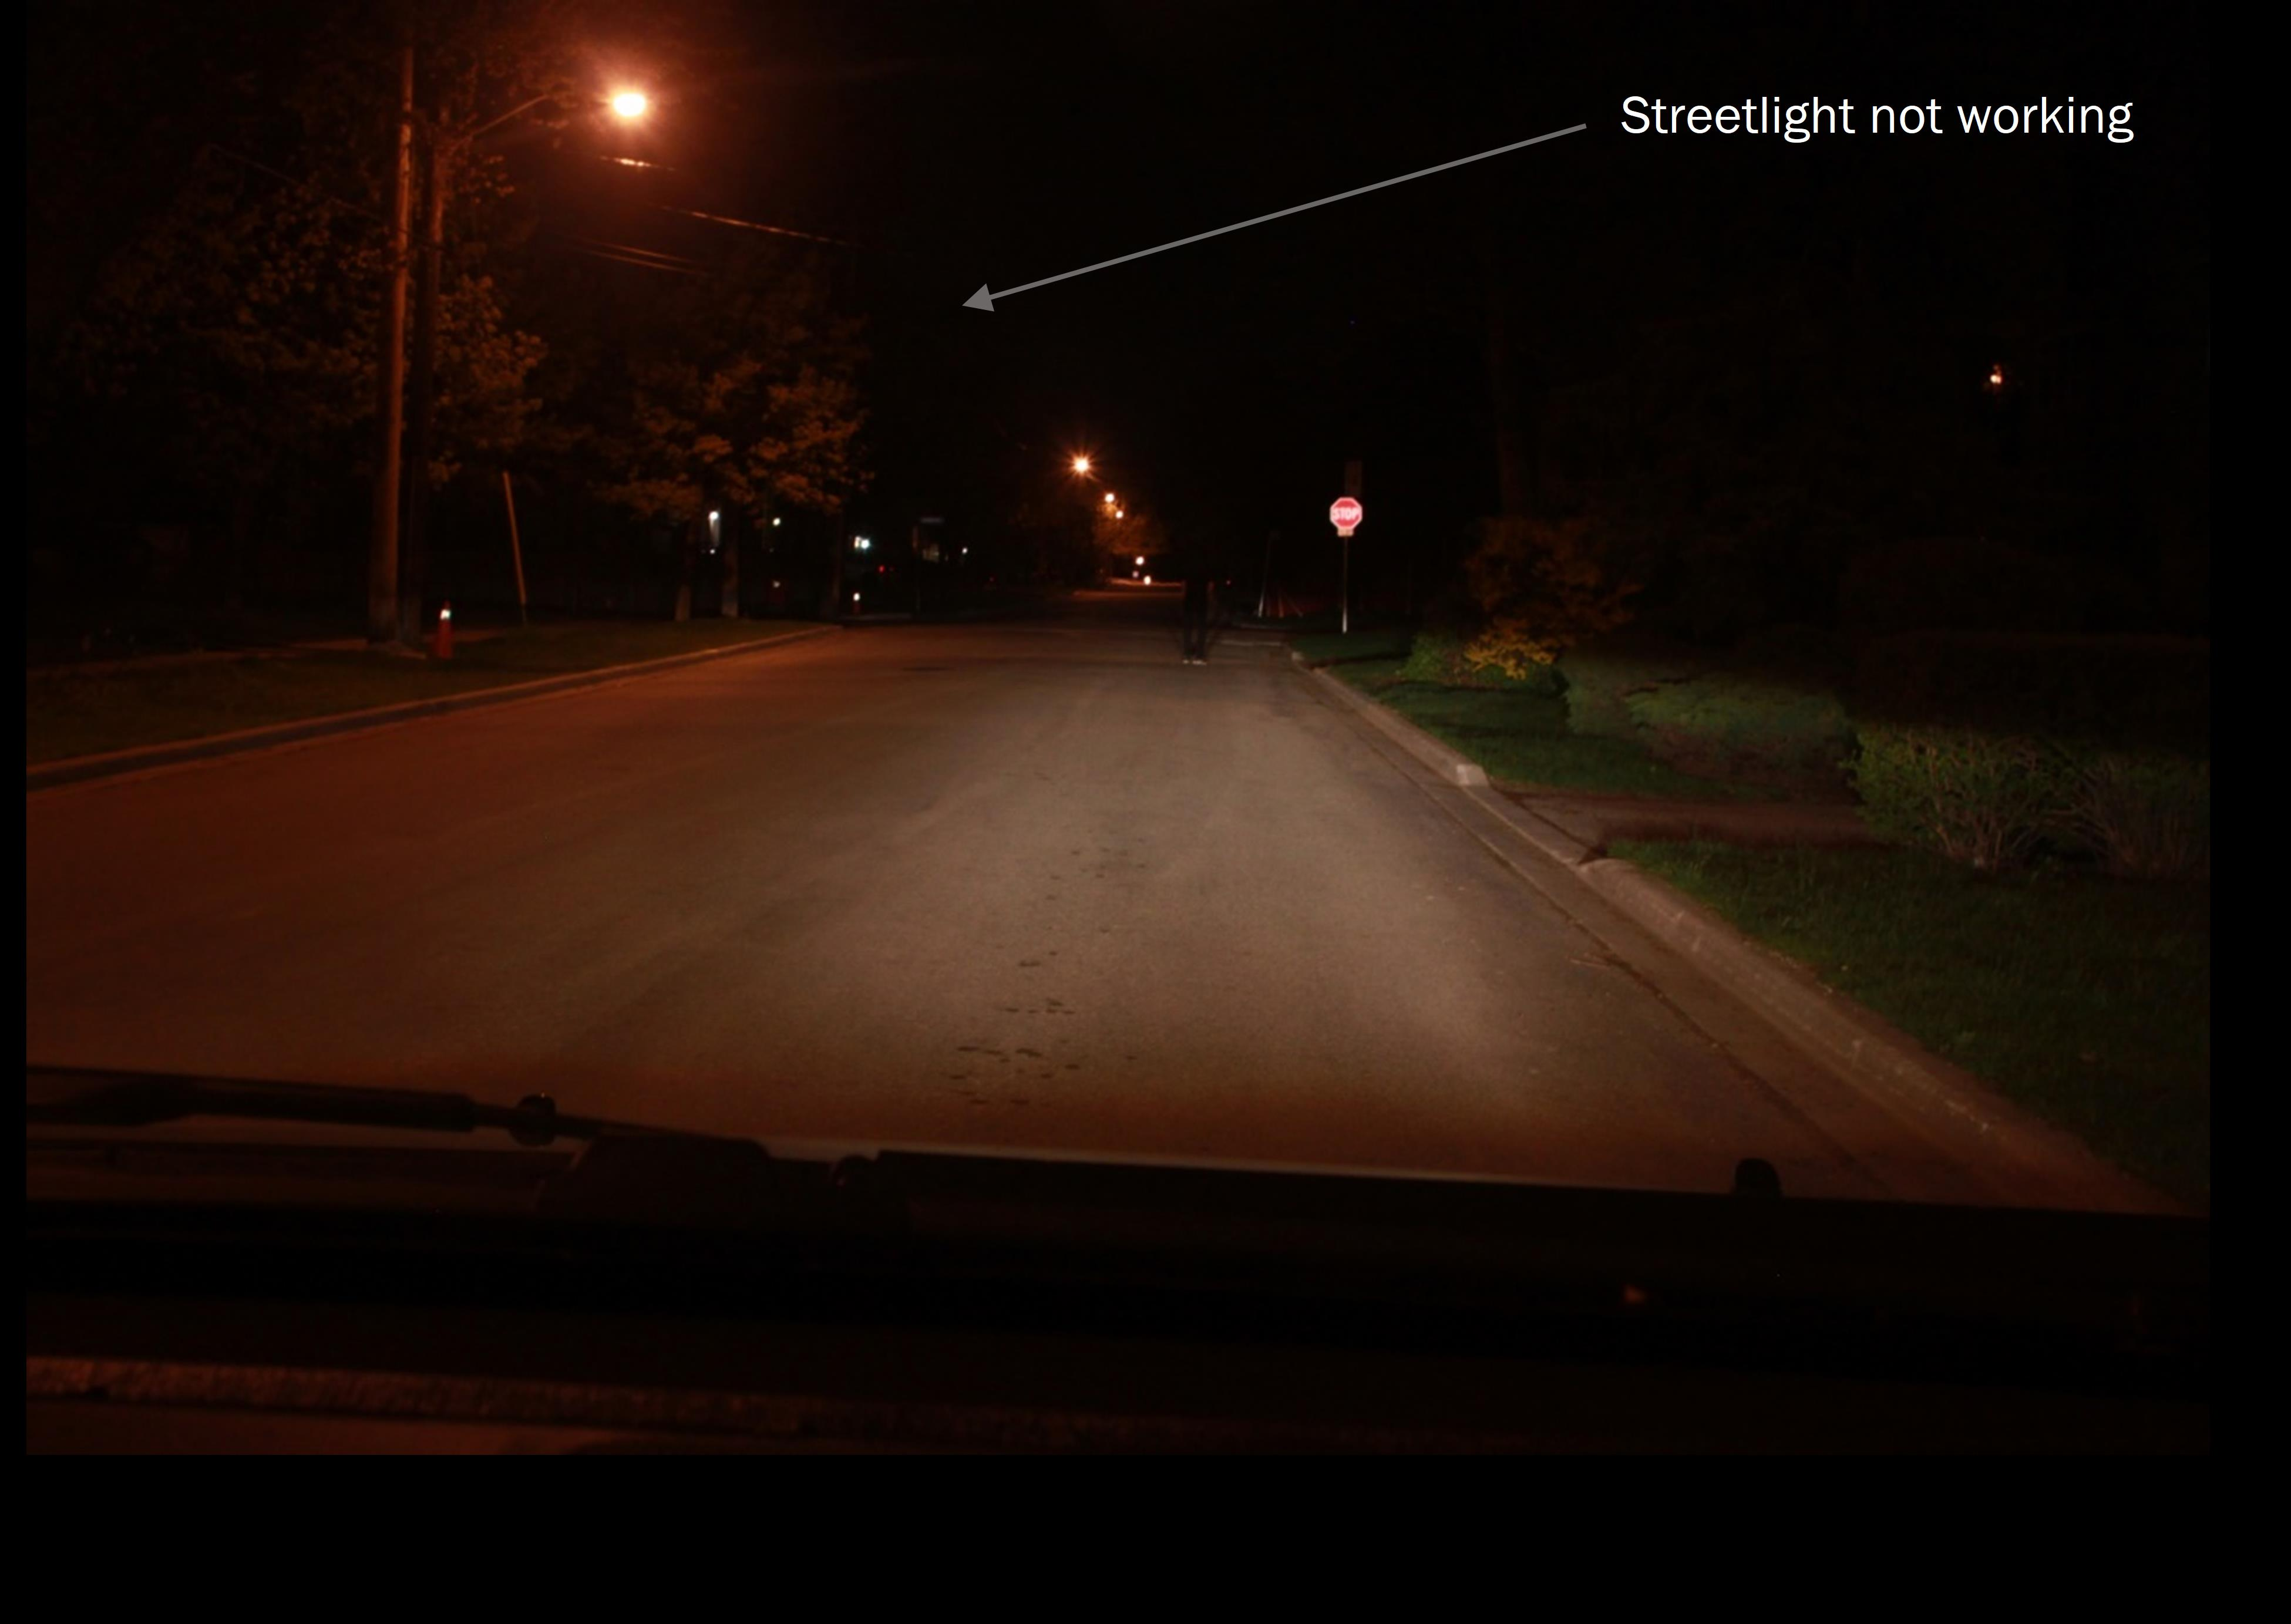 Streetlight not working - 3 seconds before collision